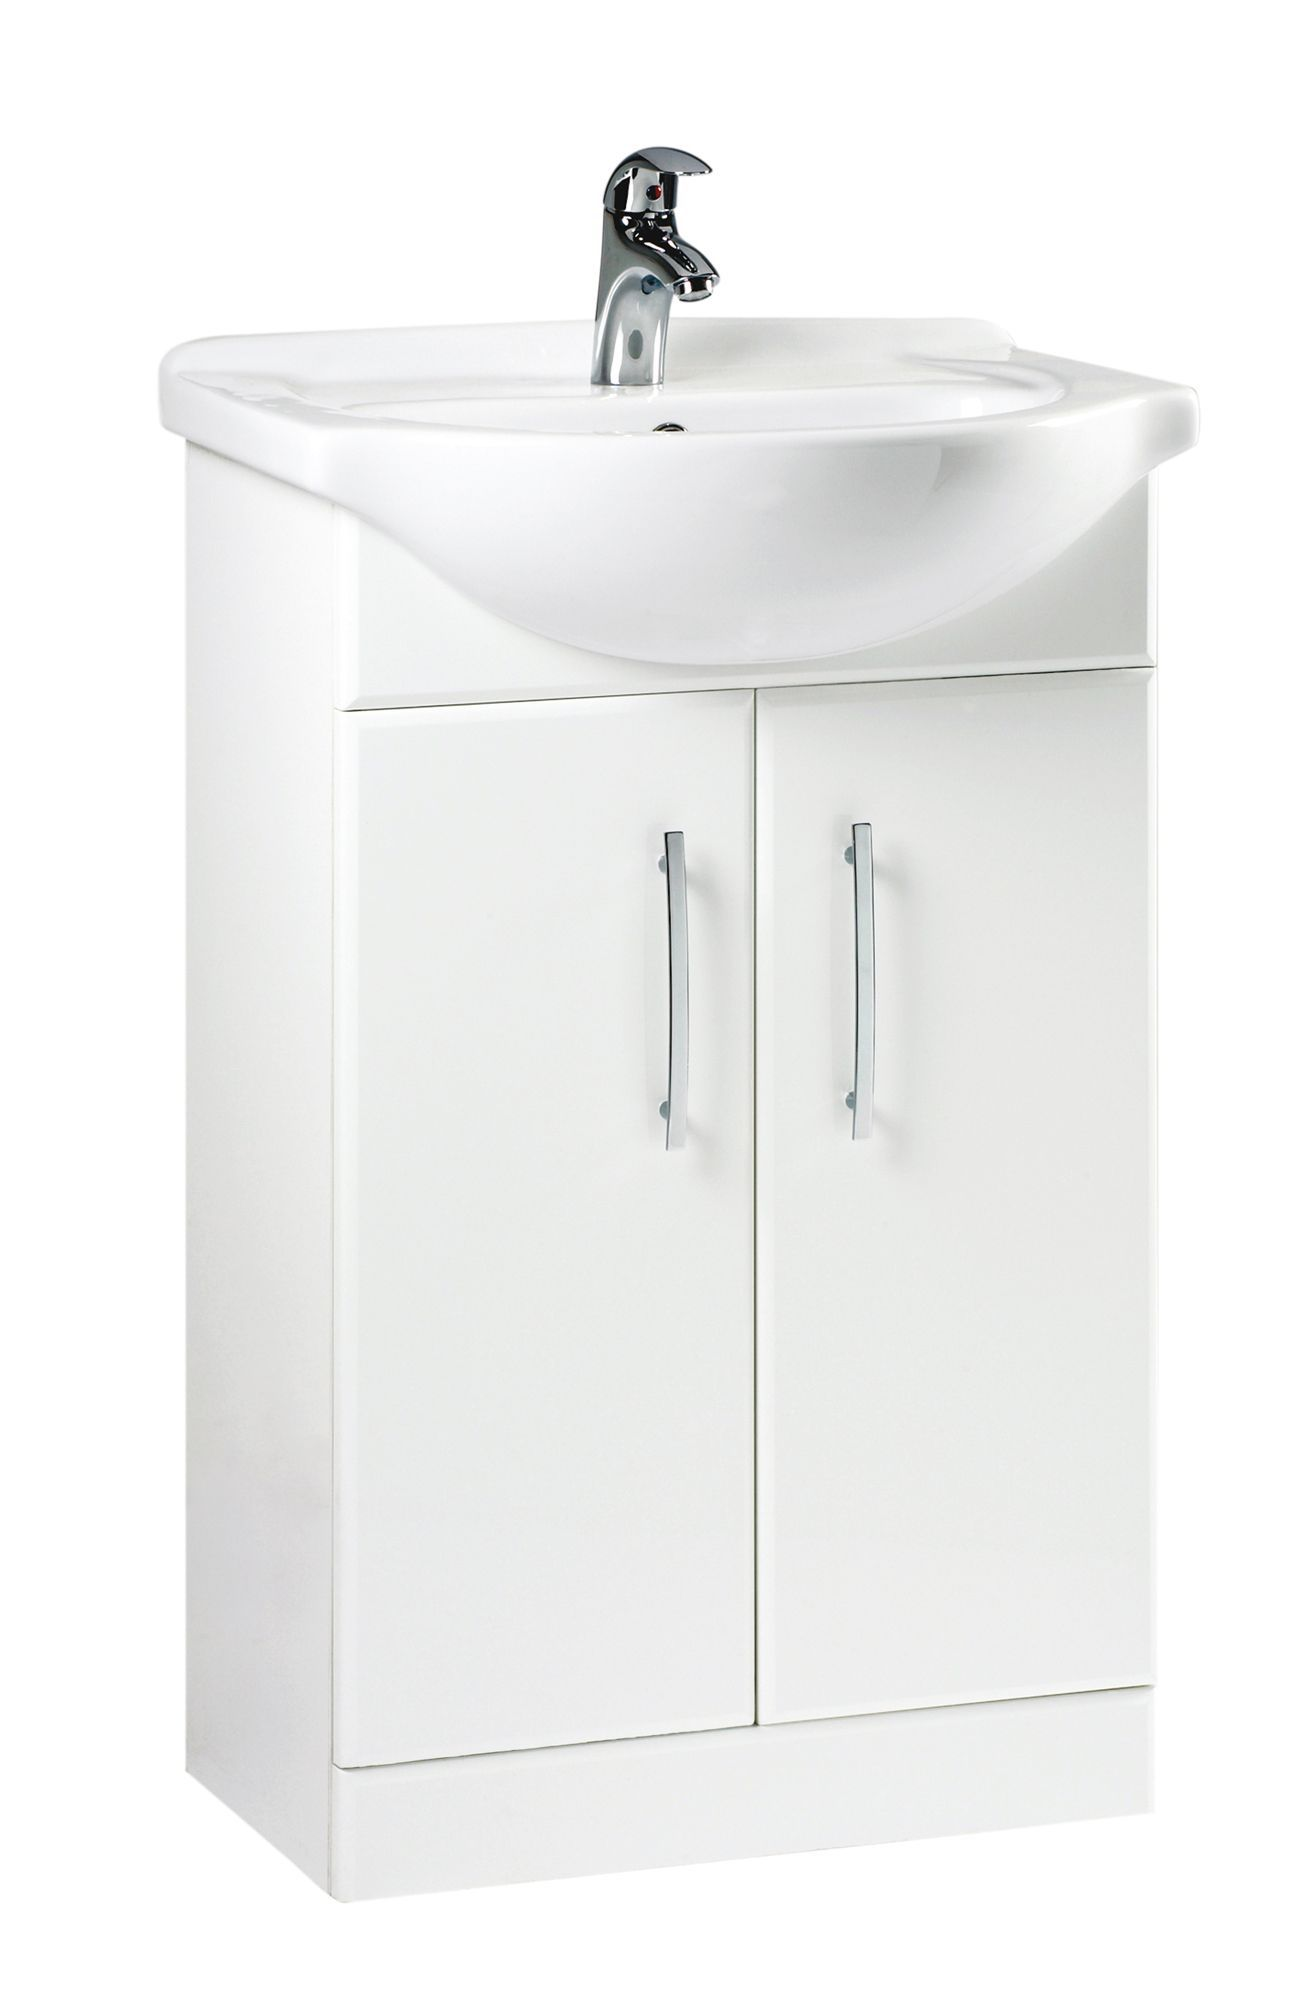 b amp q white vanity unit amp basin departments diy at b amp q 10143